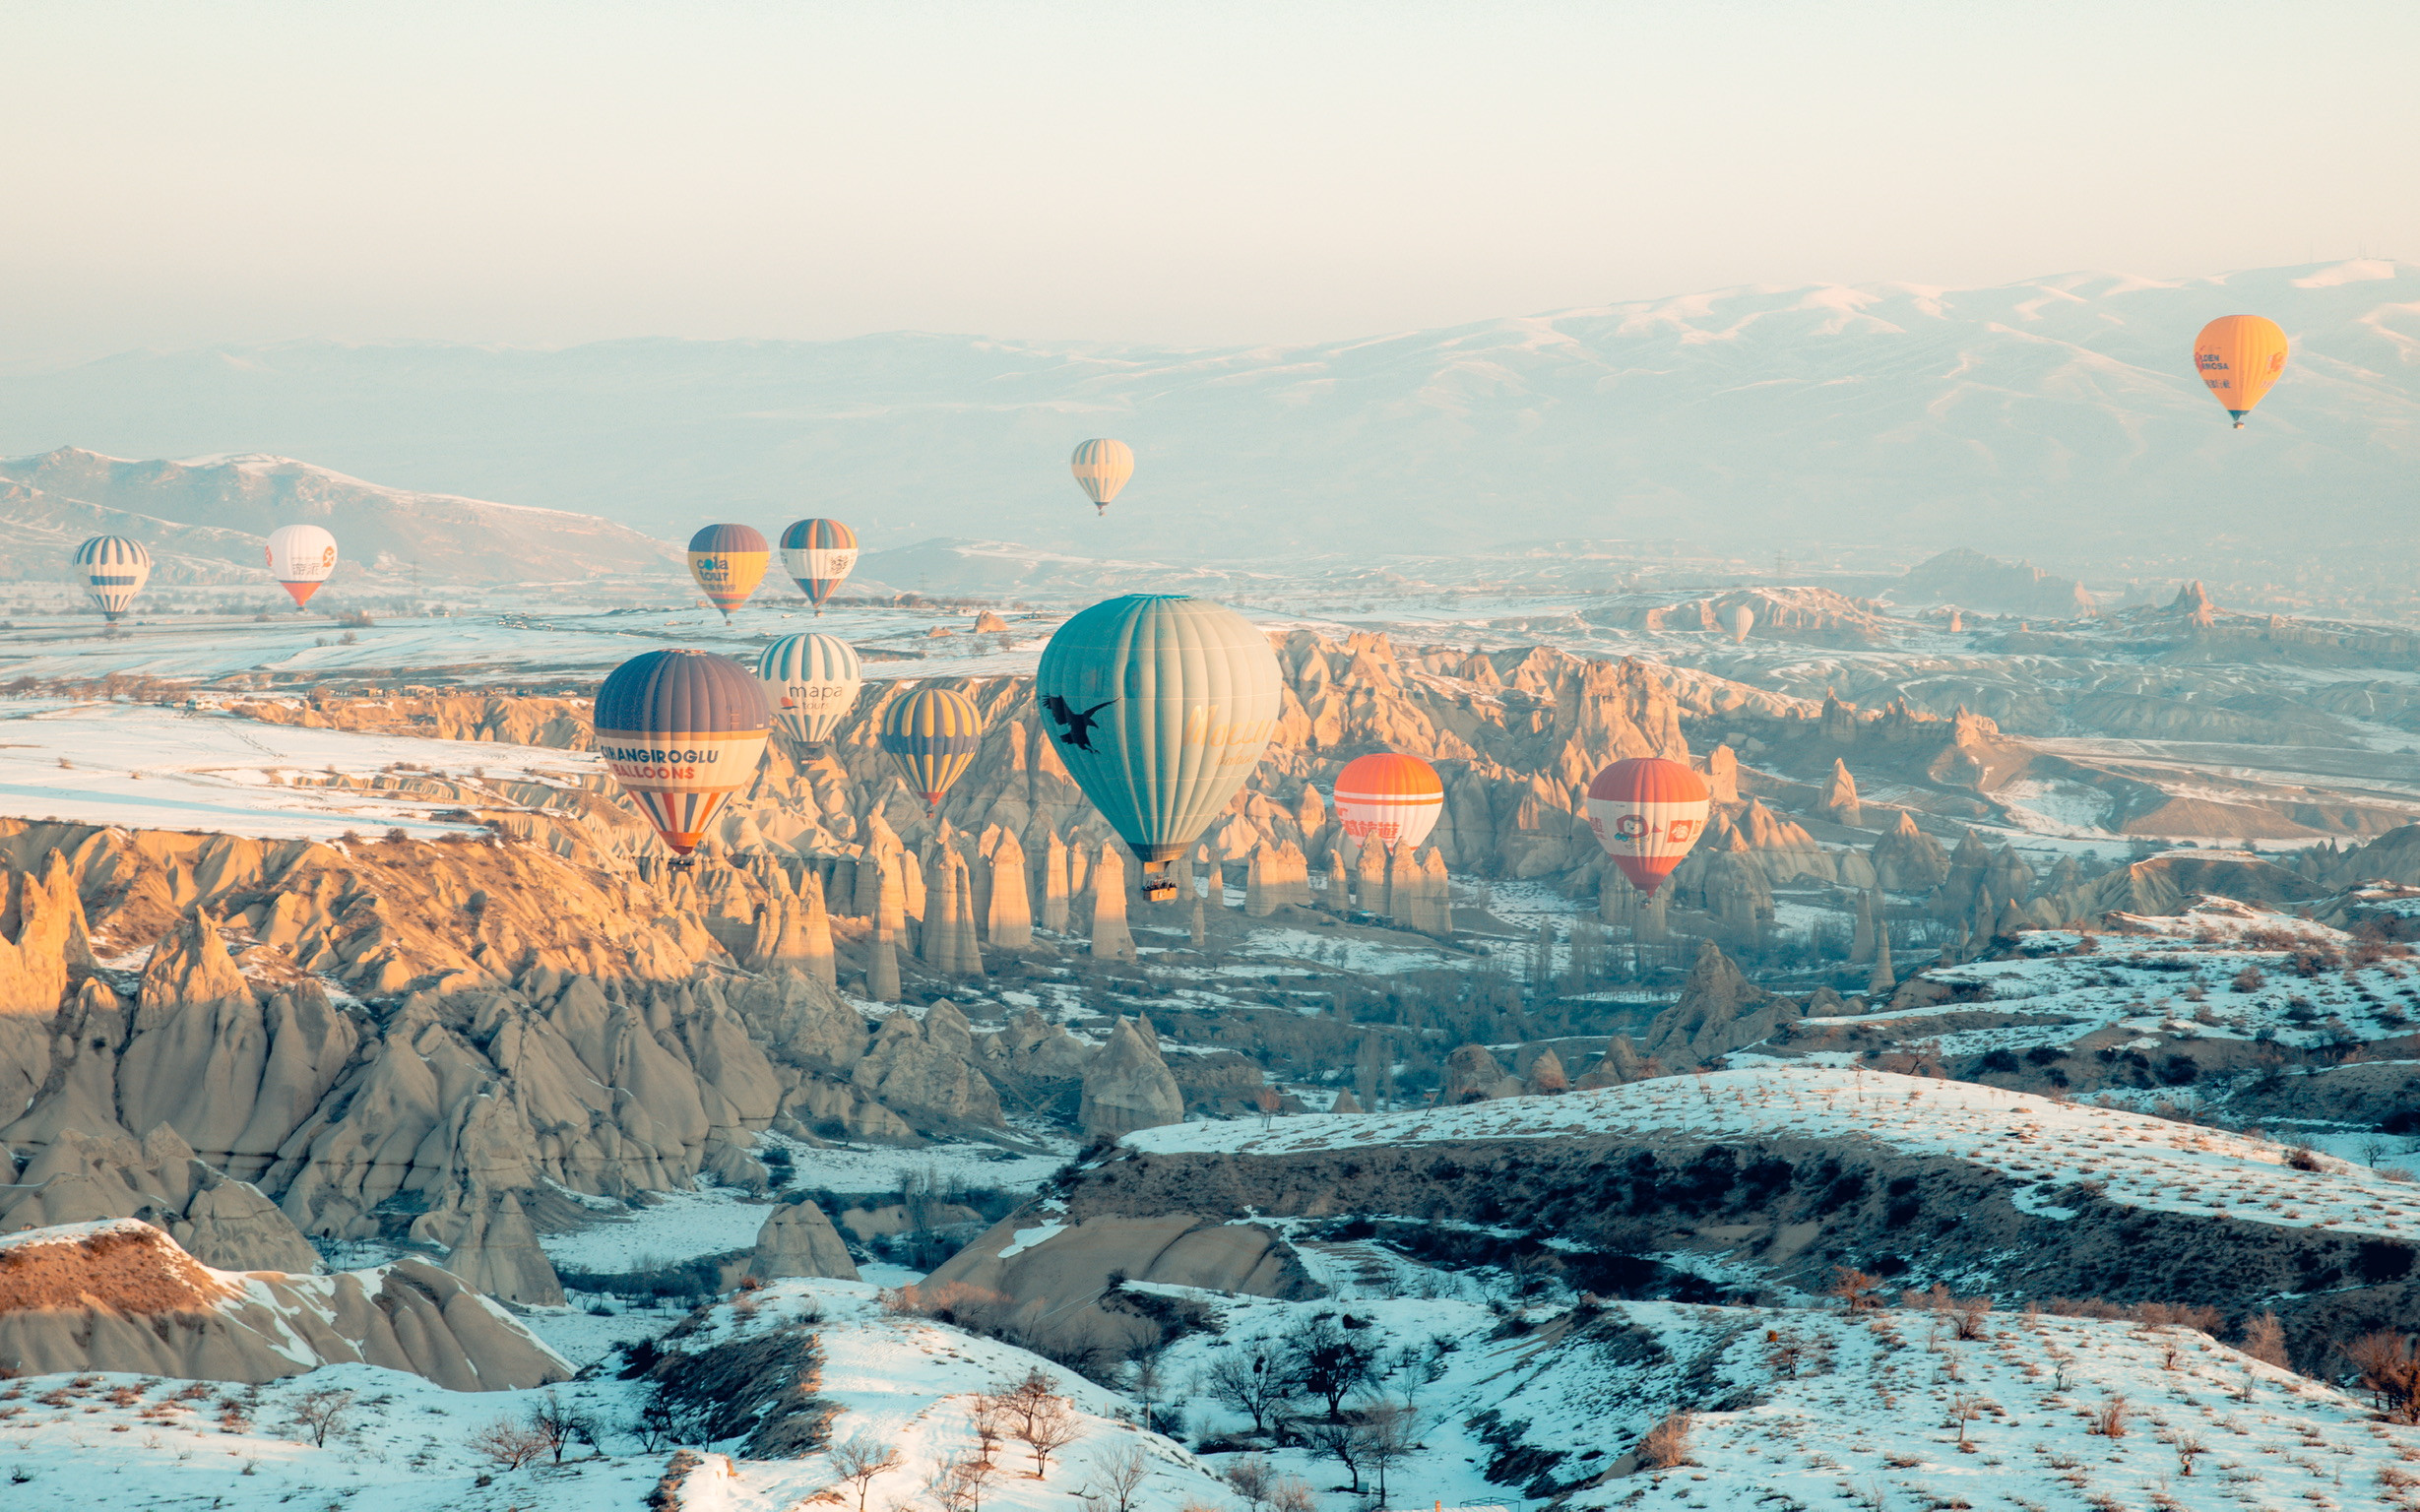 Most affordable balloon ride in Cappadocia!